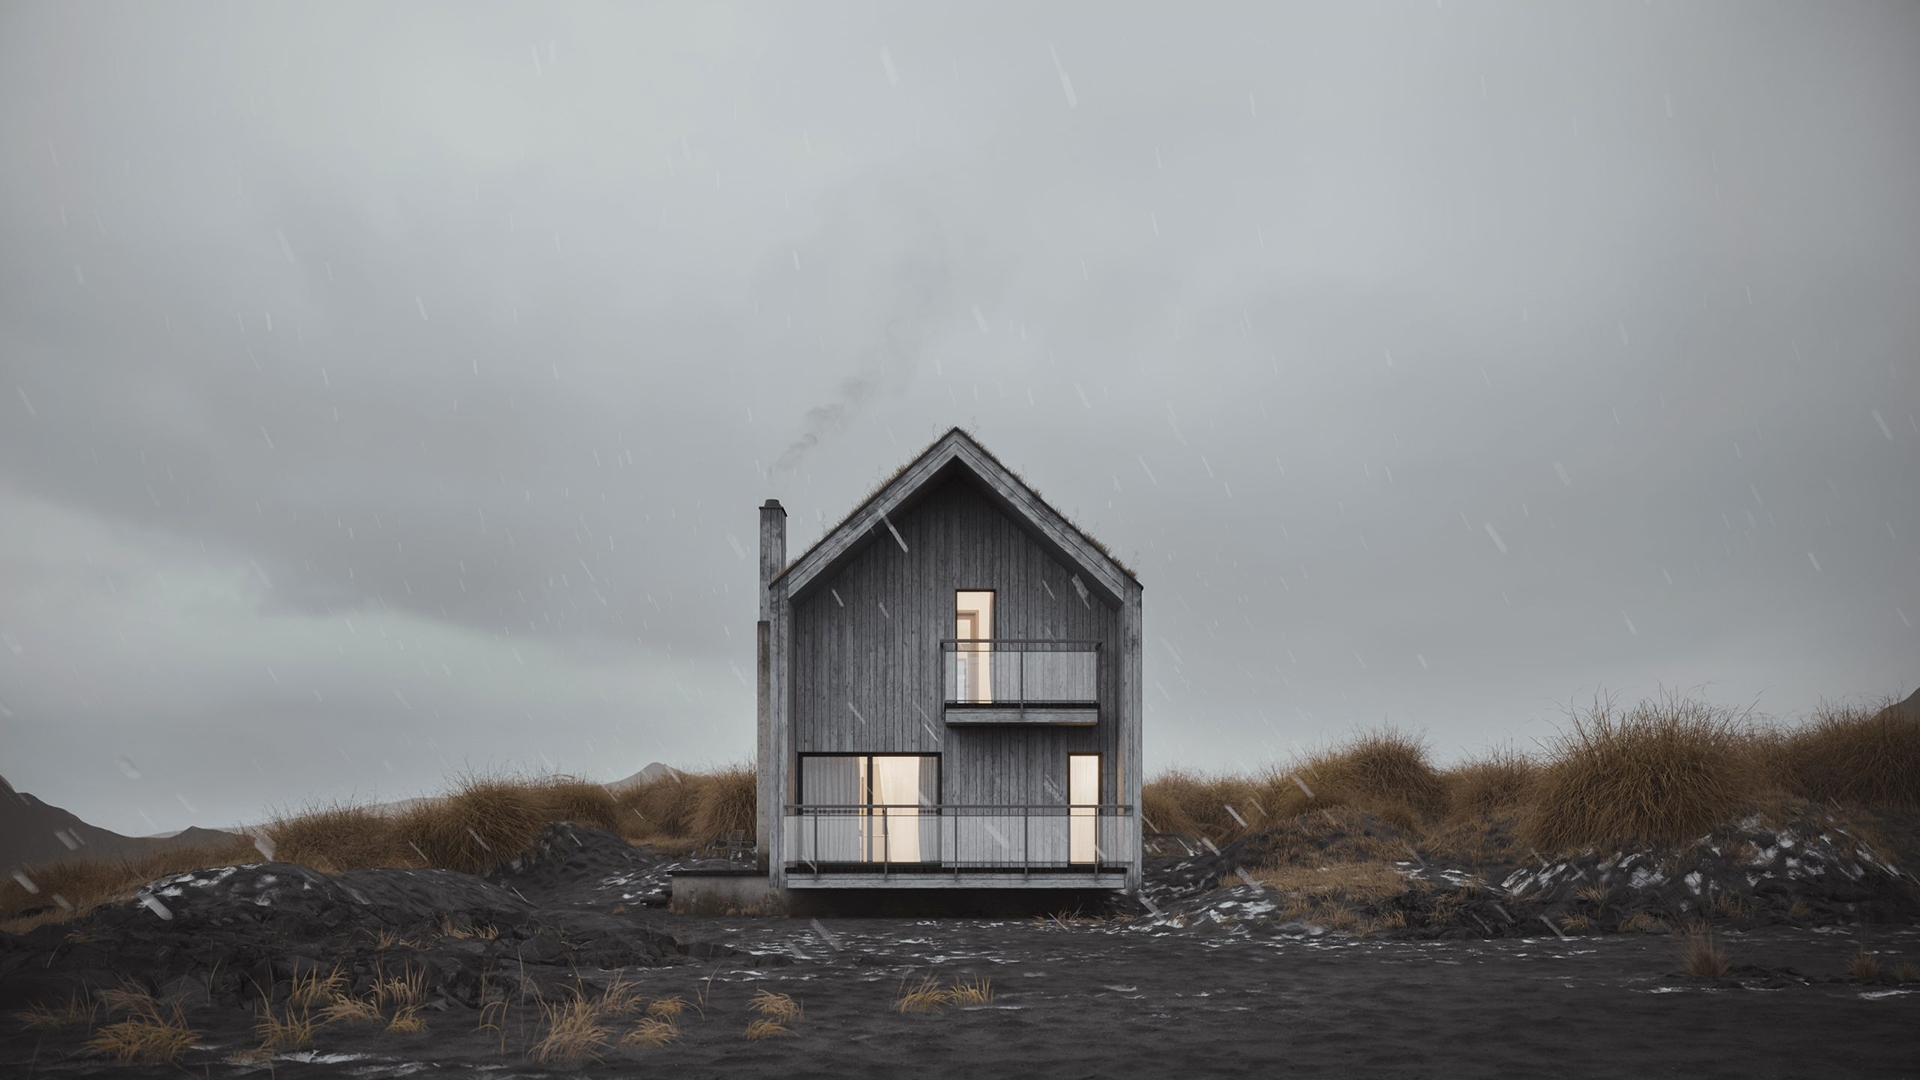 Error-Free 3D Render of a House on a Rainy Day